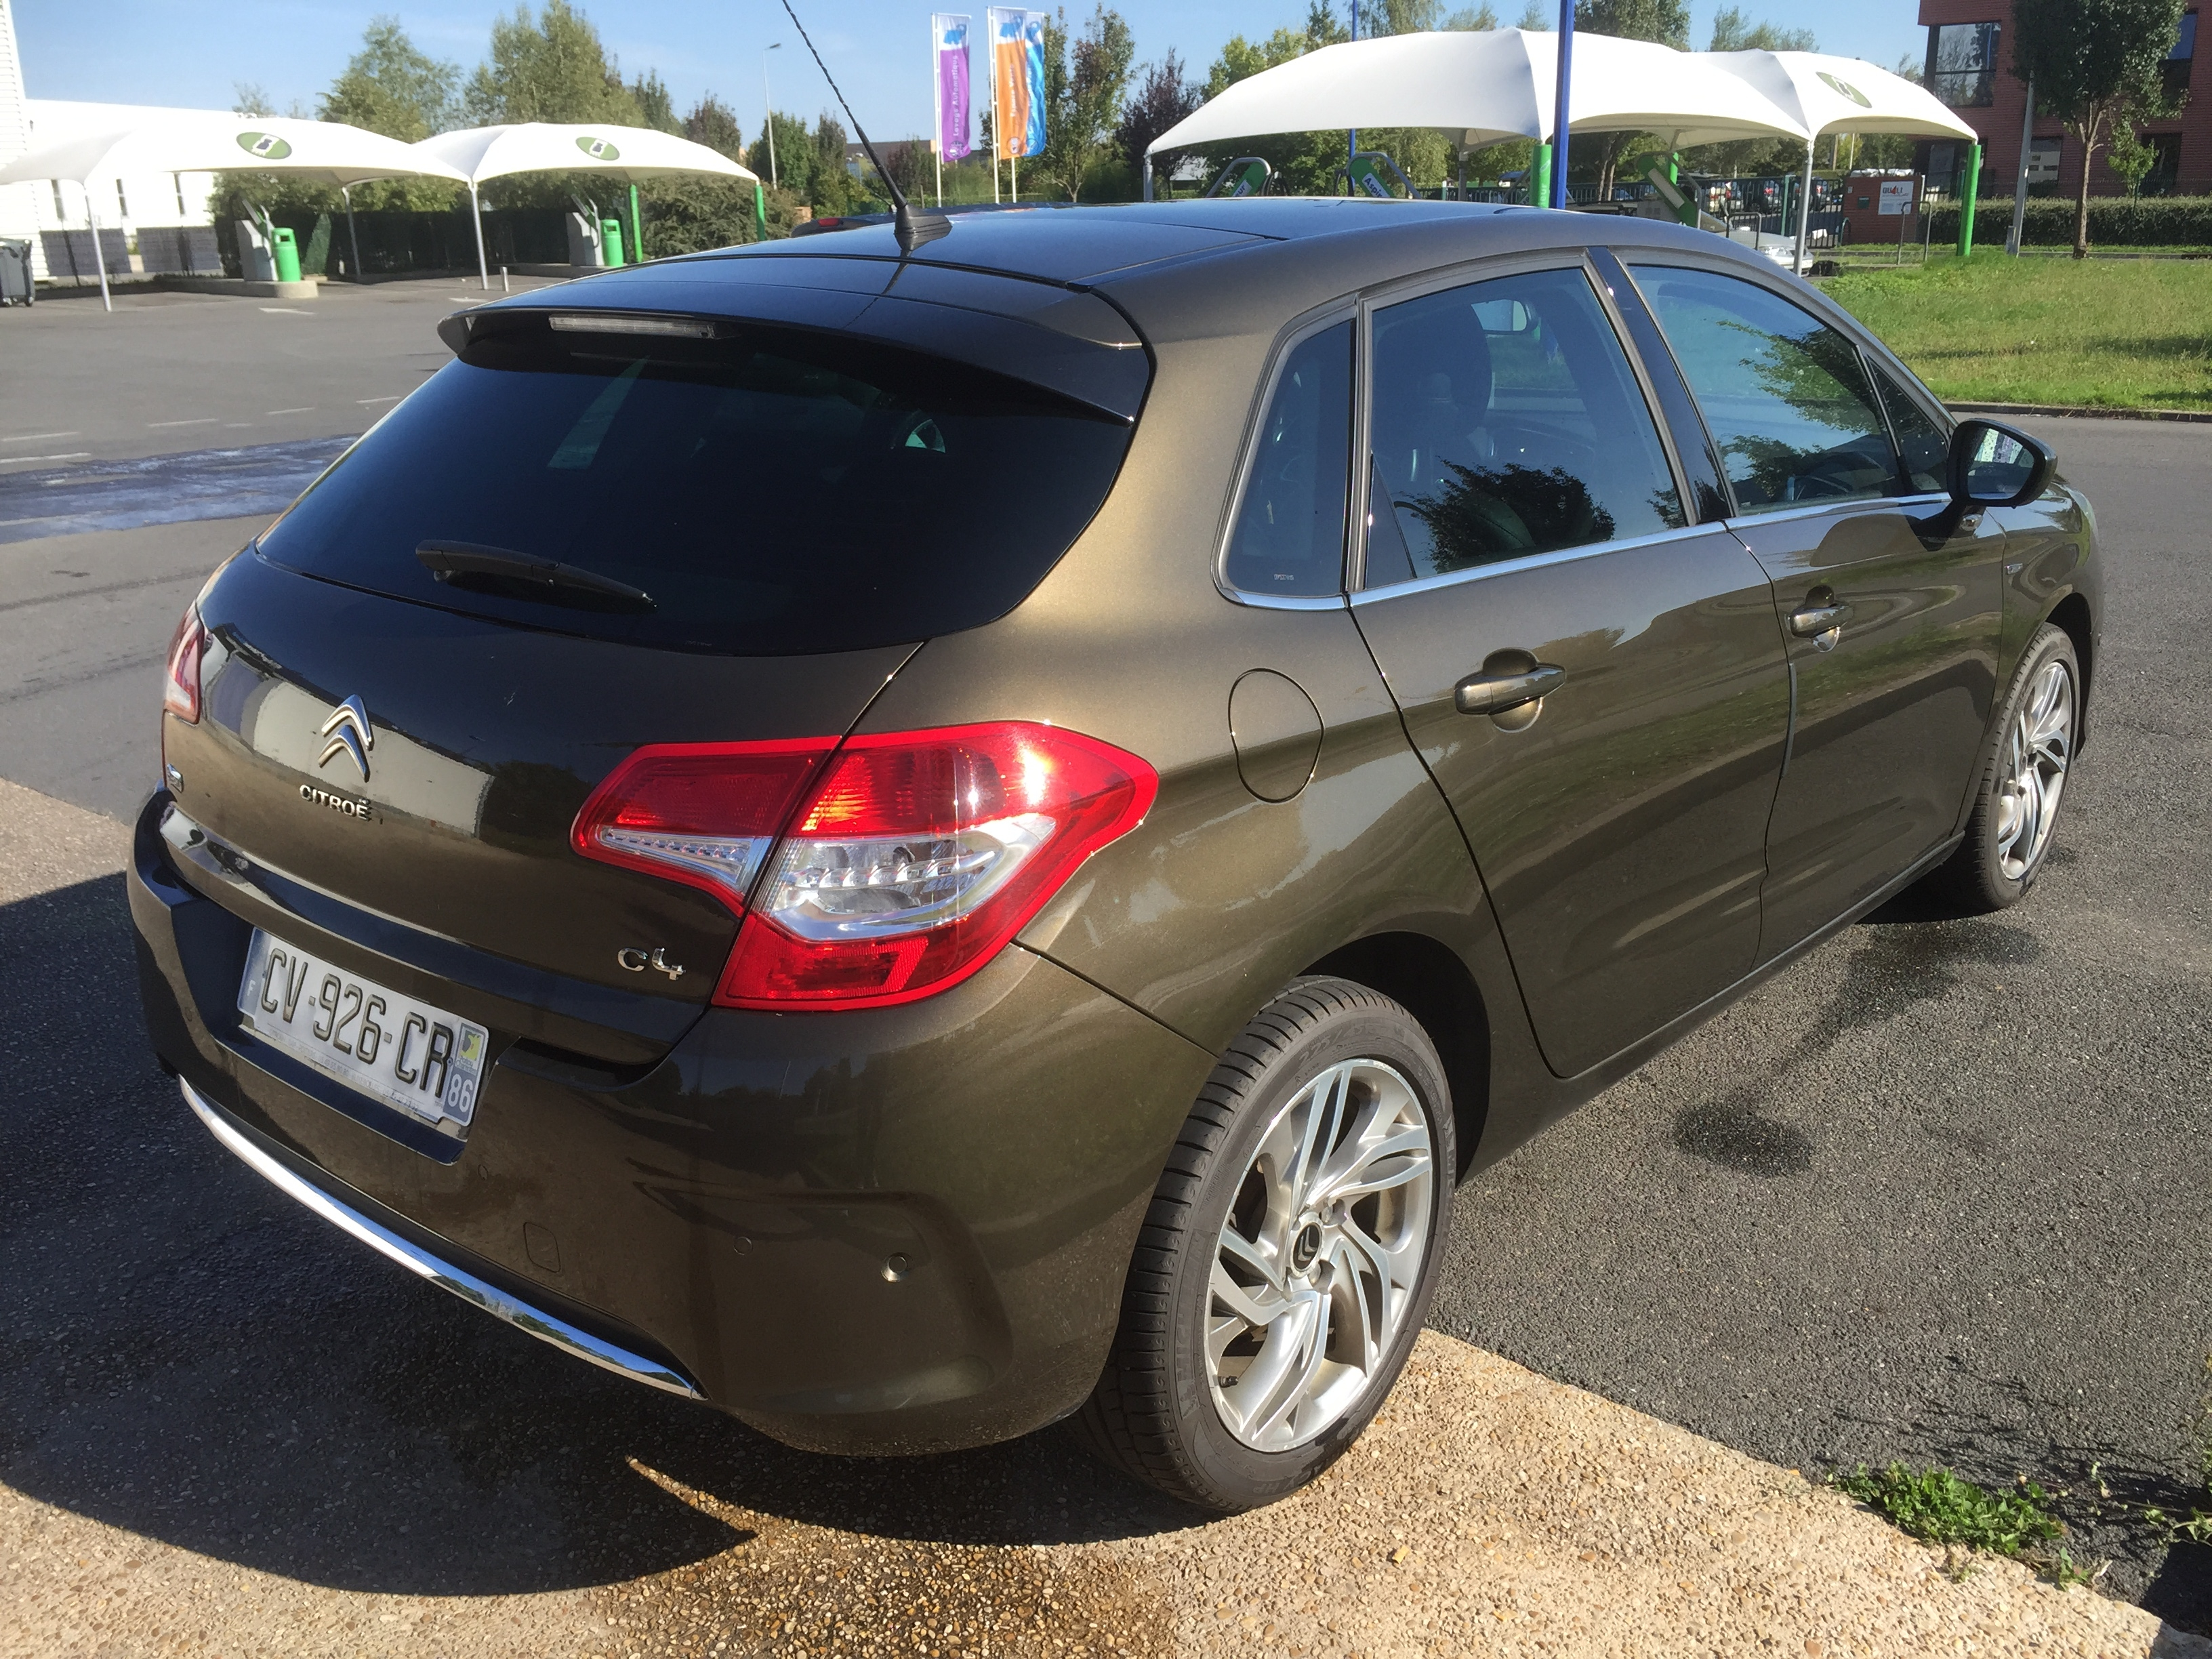 CITROEN C4 (05/2013) - BROWN - lieu: